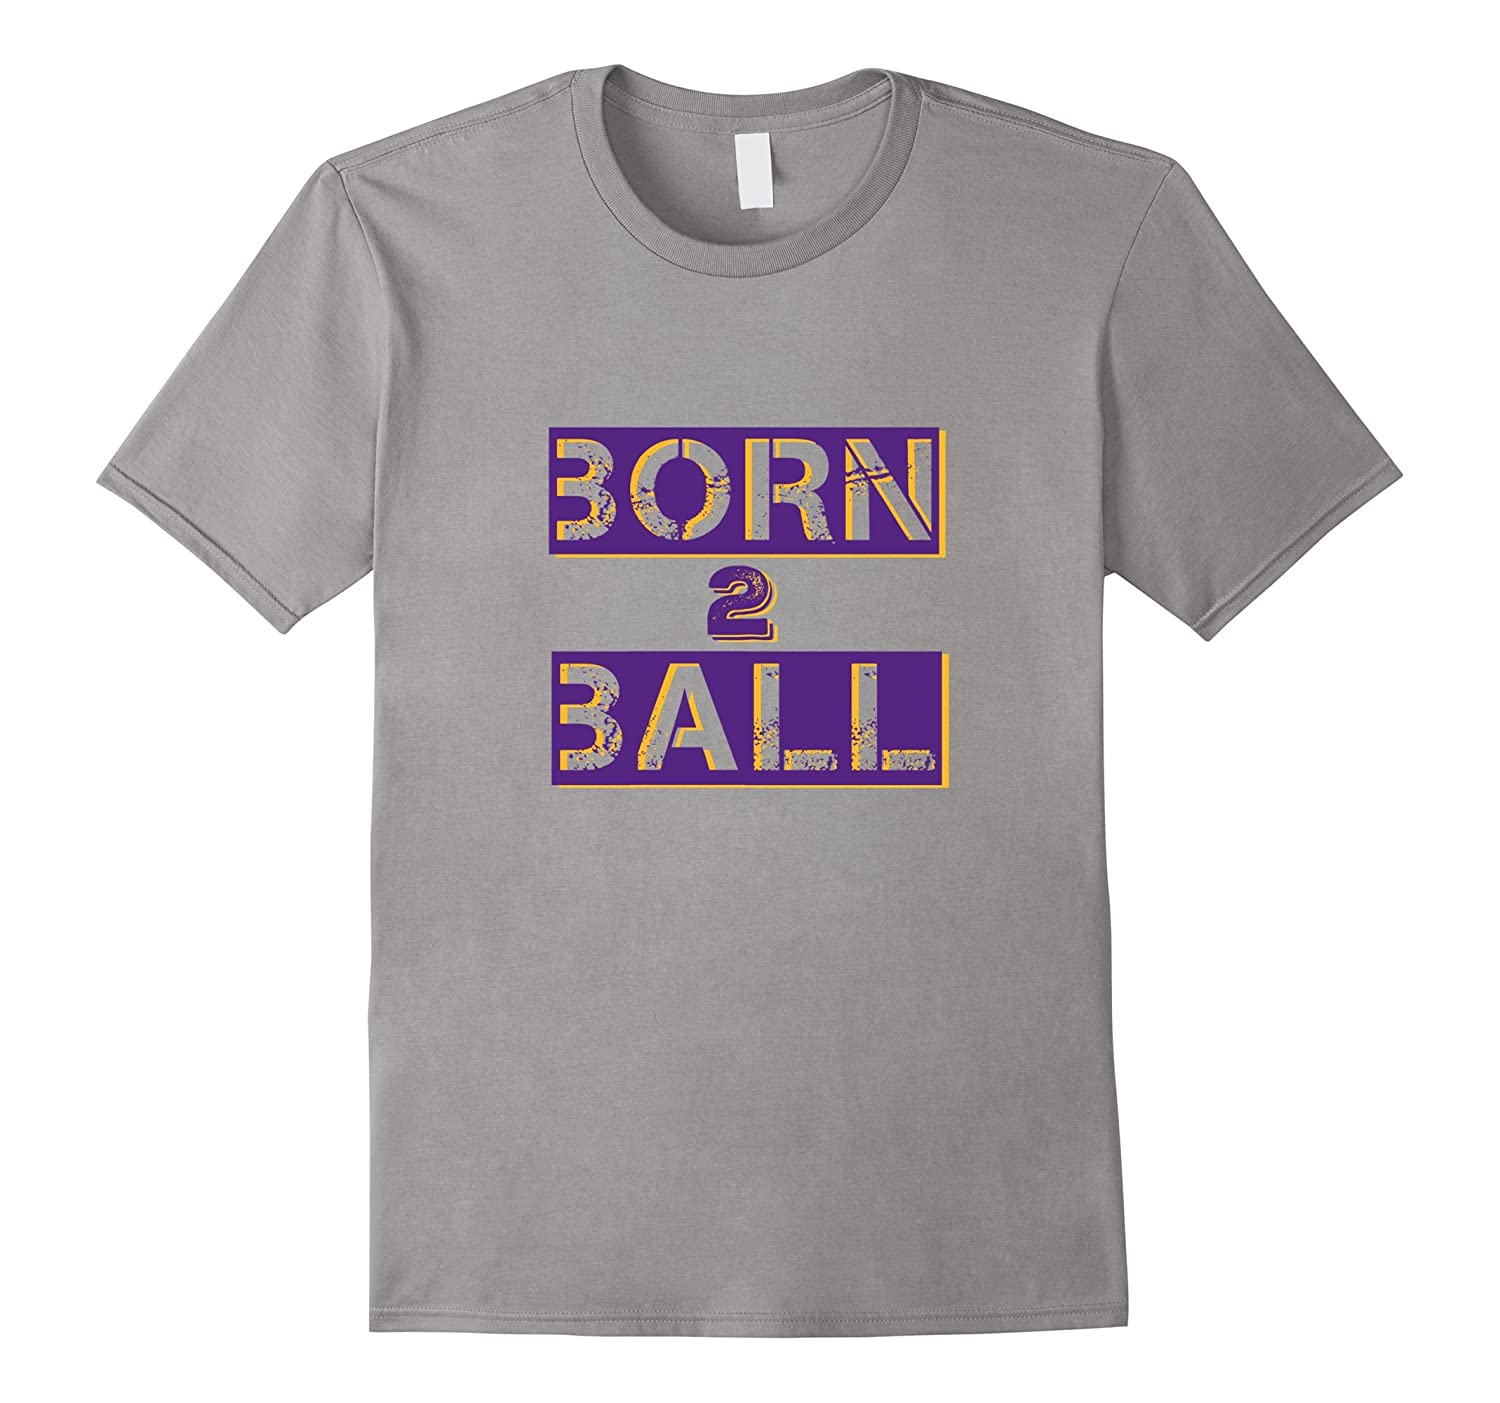 Born 2 Ball Lonzo Basket Ball Tshirt Novelty Tee-PL